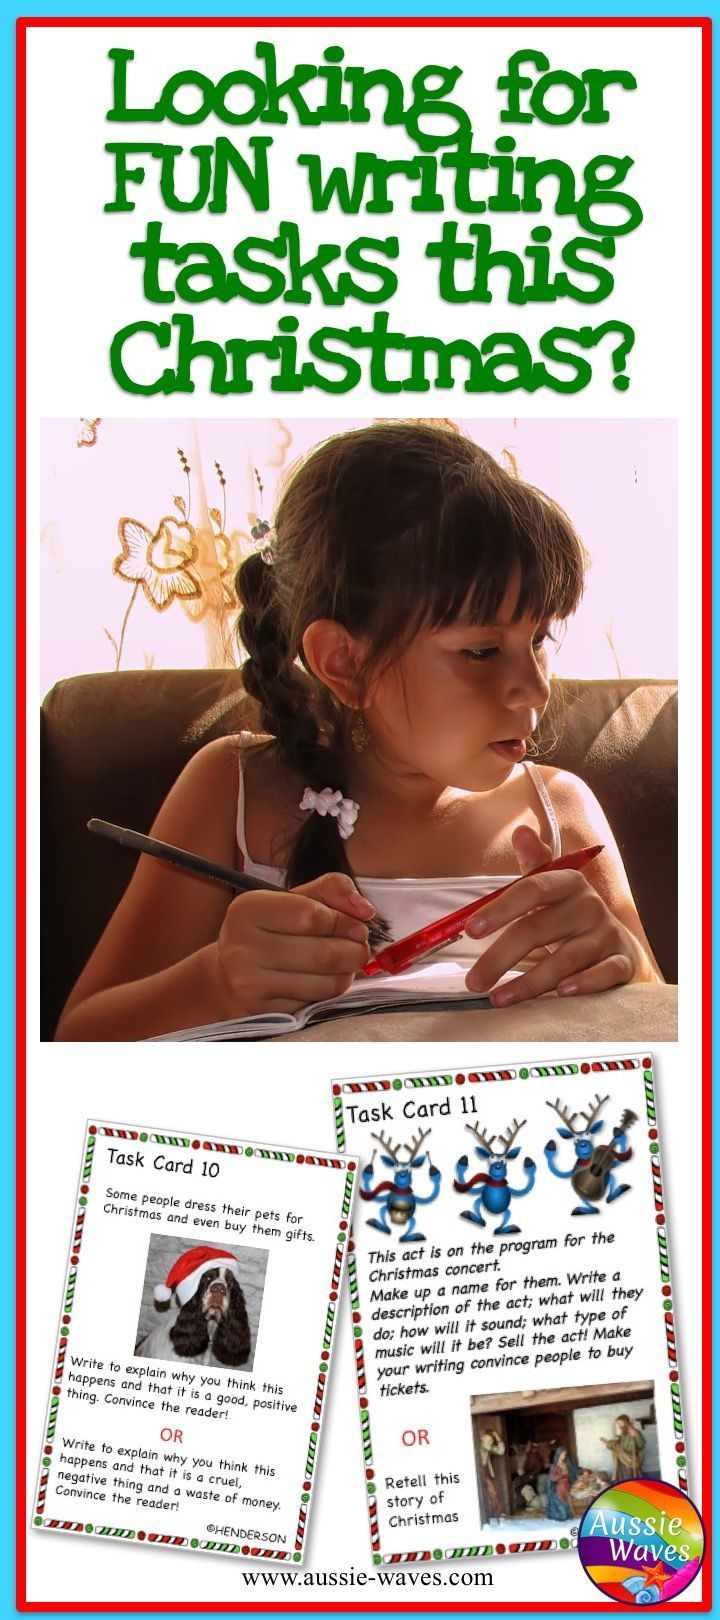 Ideas for Christmas Writing at School. Printable task cards to inspire kids to be creative with writing.